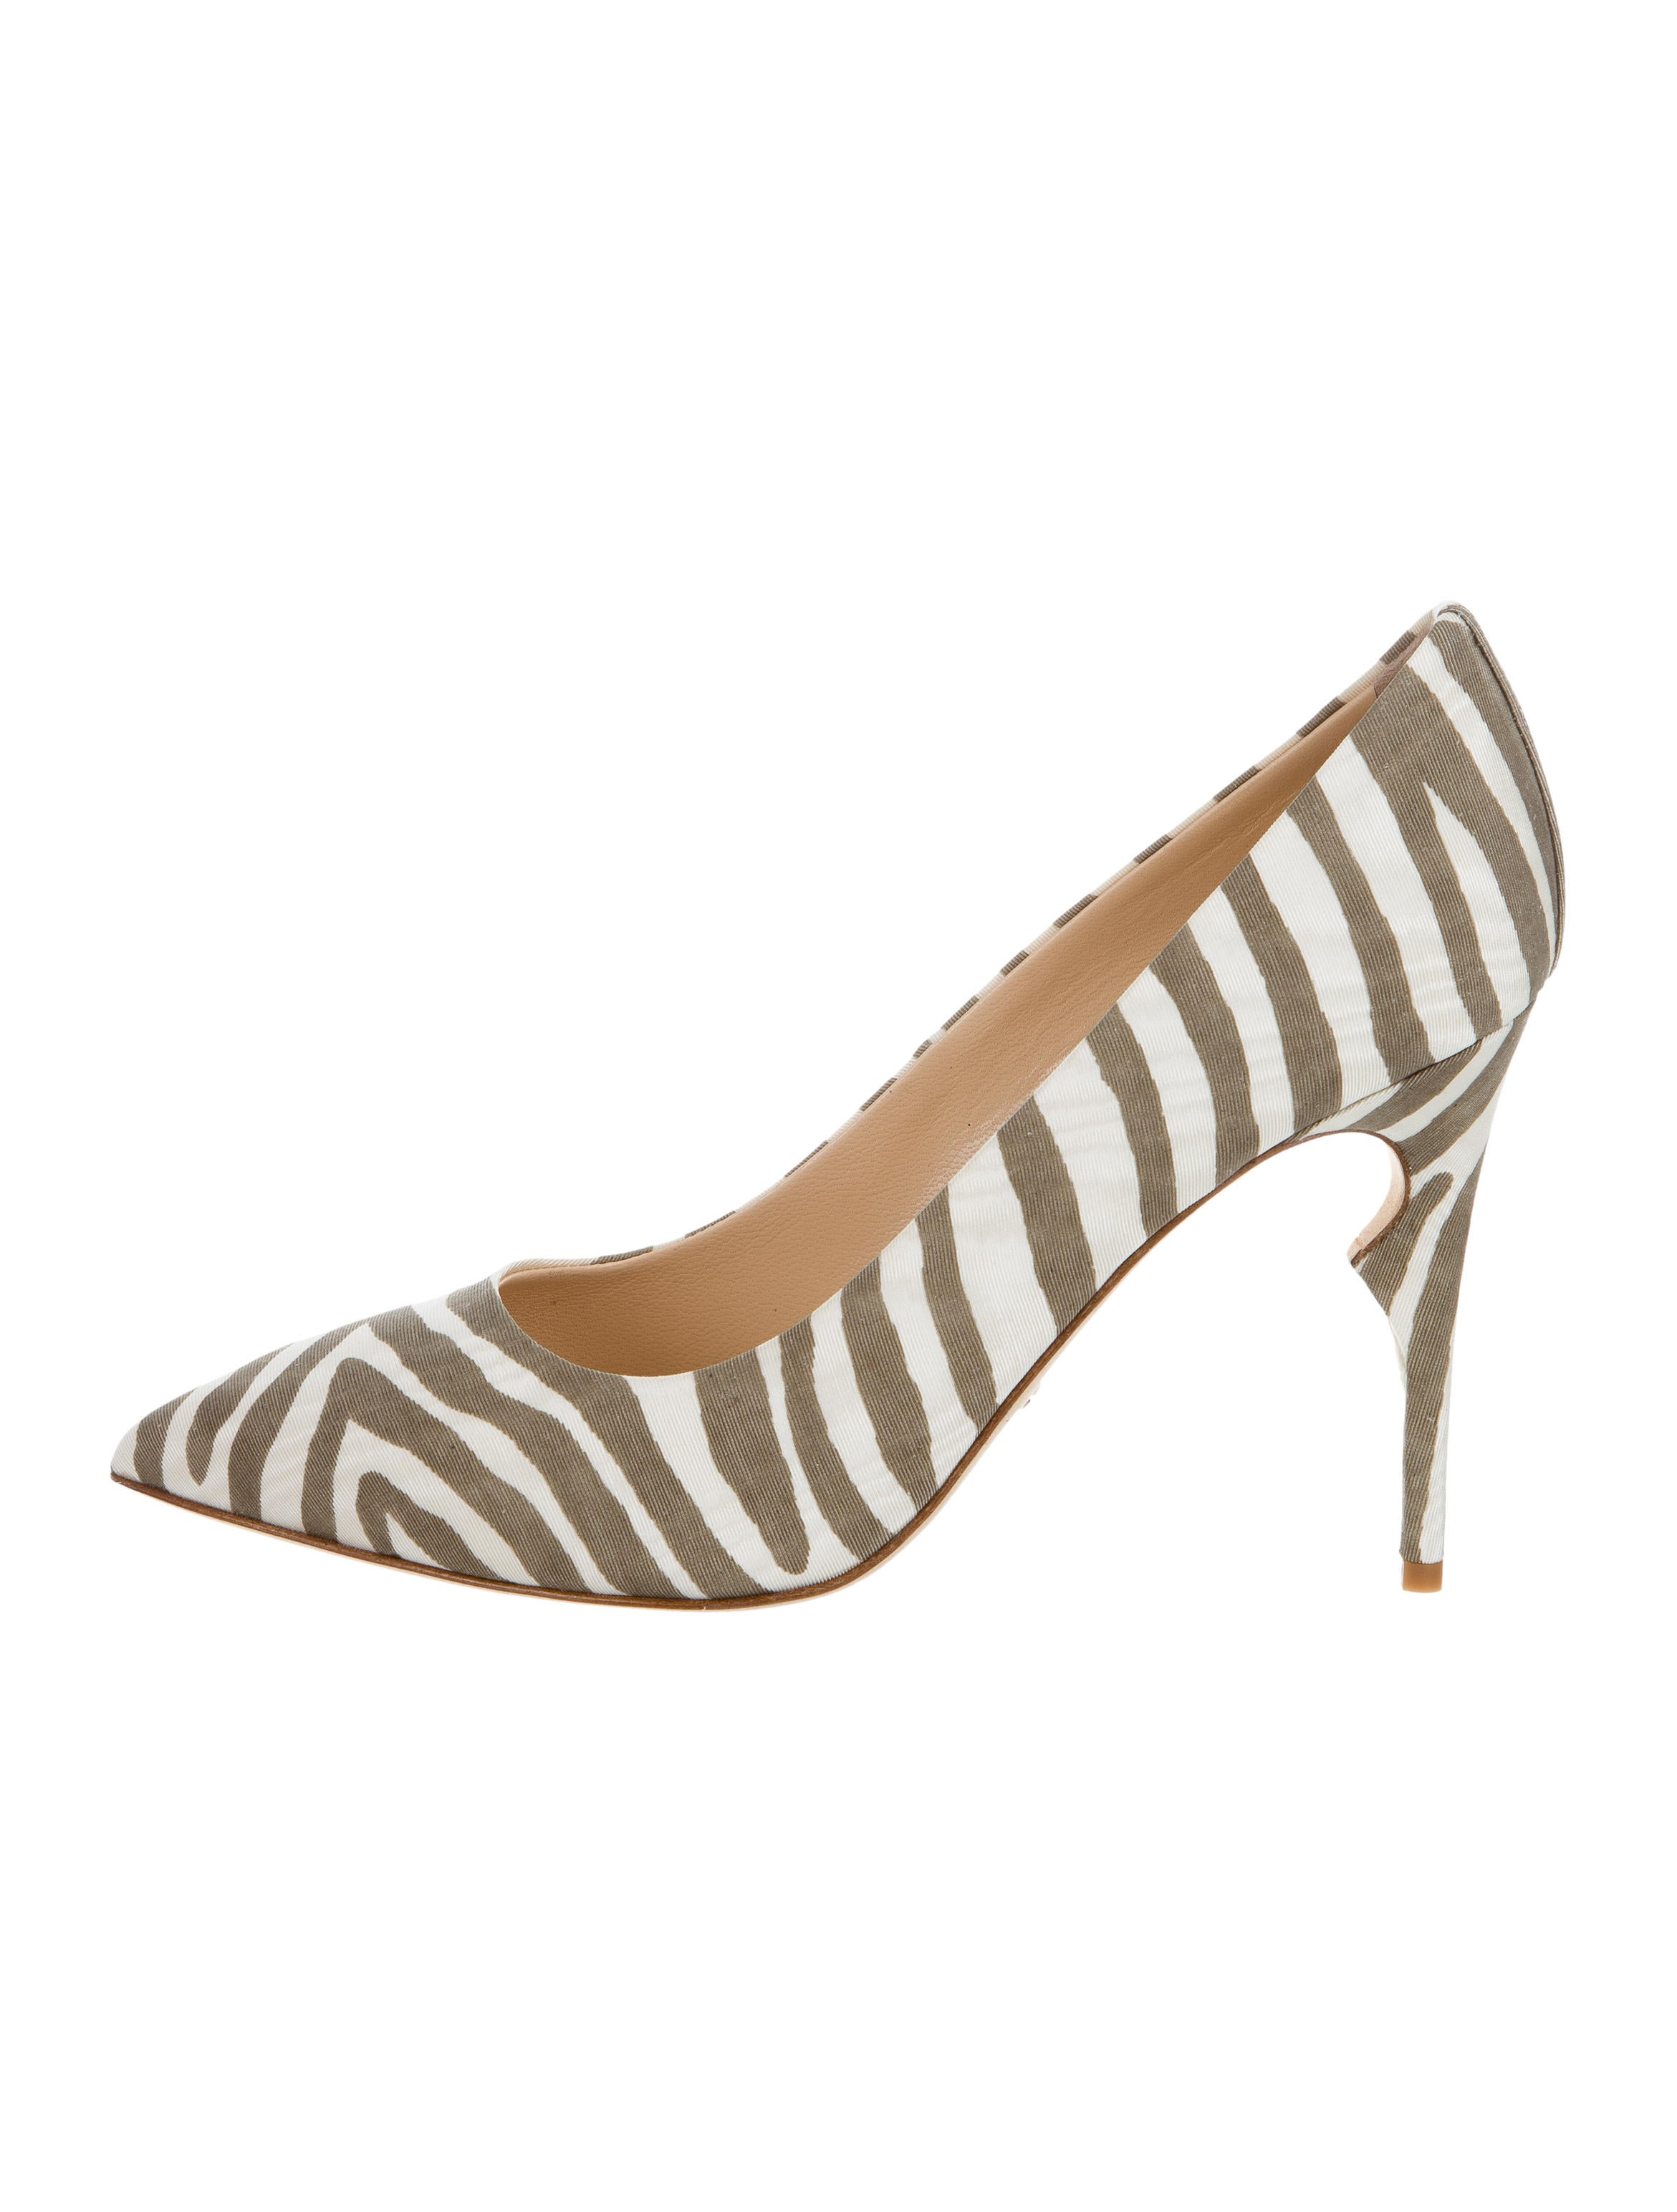 footlocker sale online buy cheap fast delivery Jerome C. Rousseau Zebra Print Pointed-Toe Pumps discount the cheapest buy cheap with paypal GRy0F